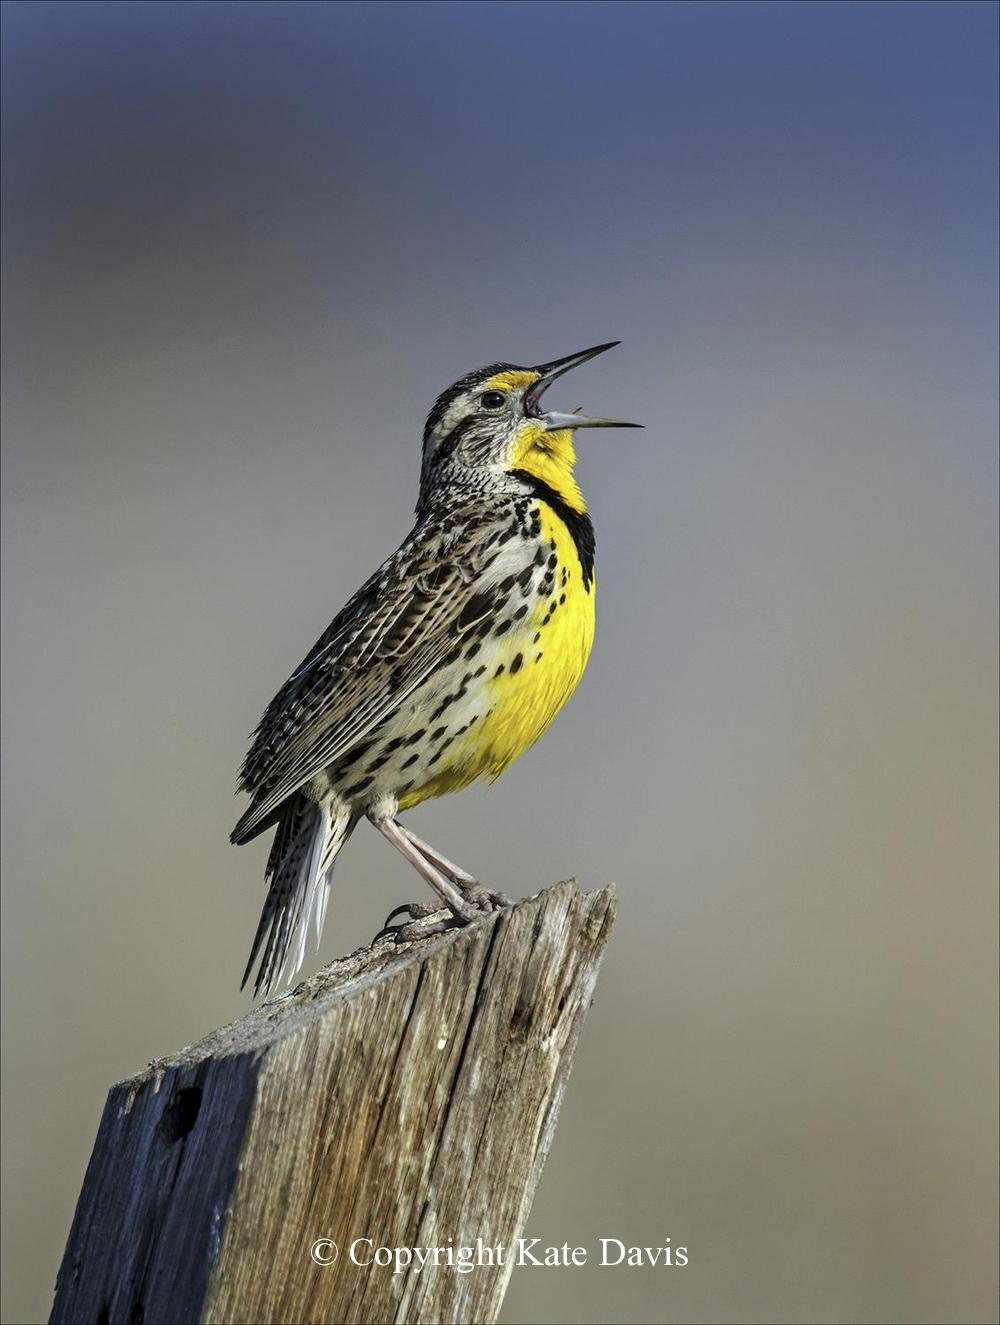 Song Bird Photos - Western Meadowlark - Shore Bird Photos - Western Meadowlark in song at the pole in our driveway